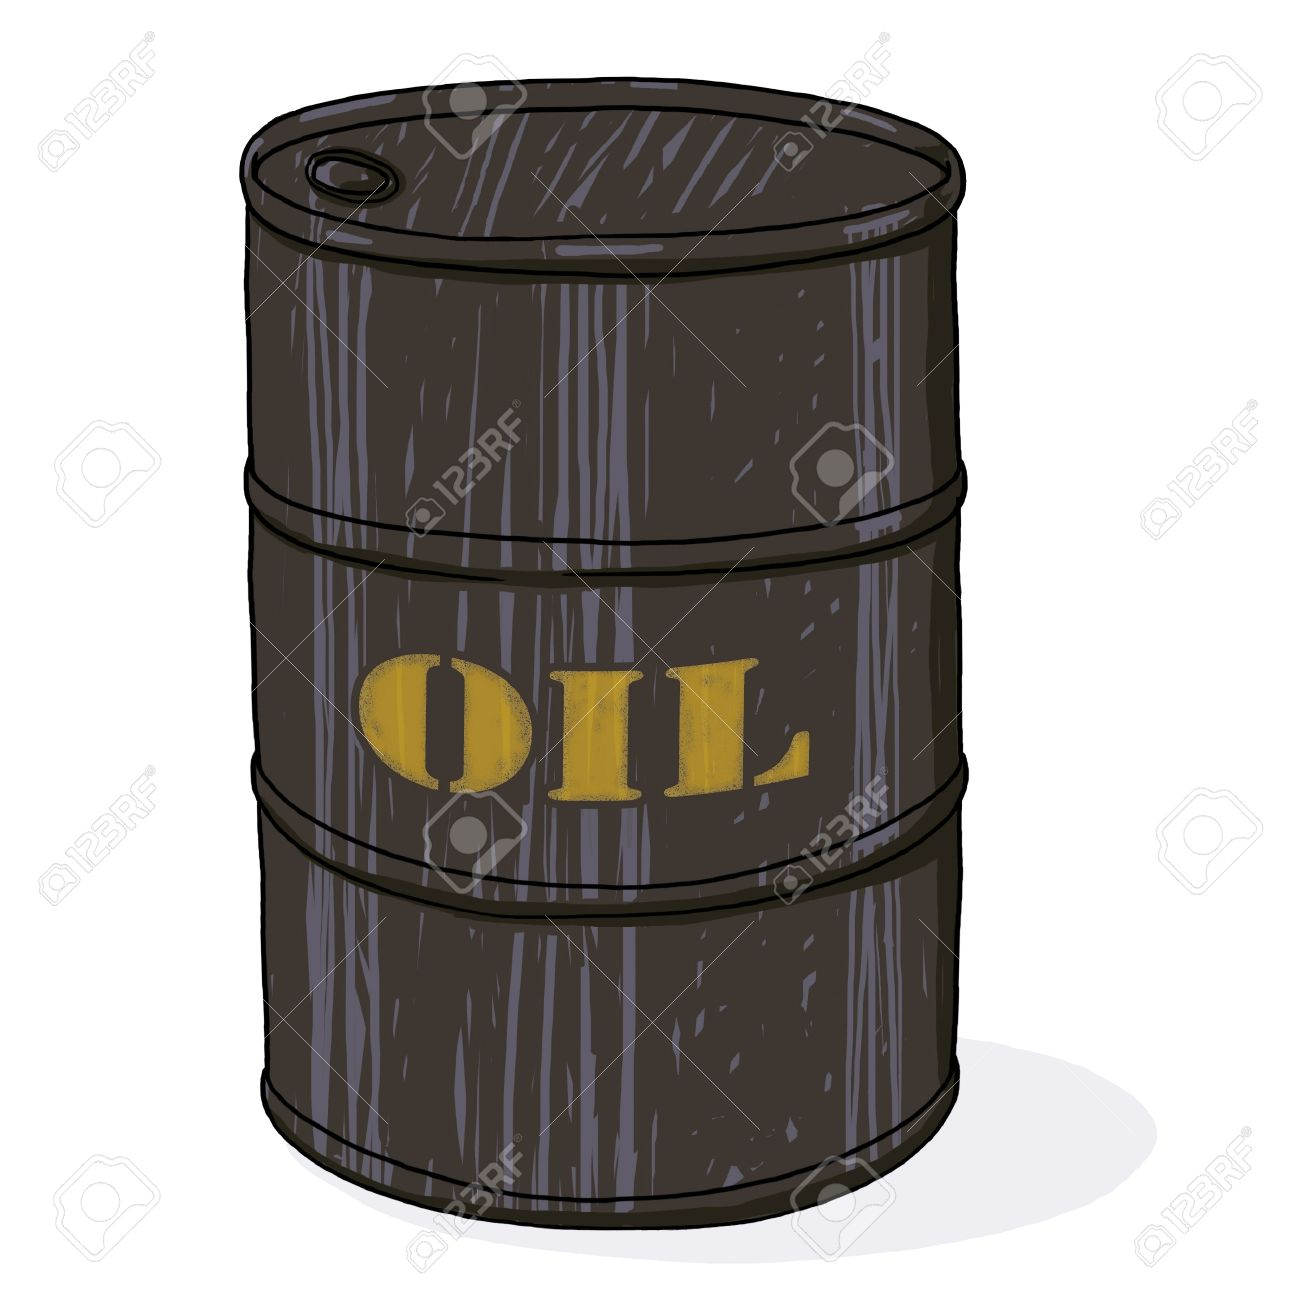 Oil barrel illustration; Isolated oil barrel drawing; oil barrel with printed golden text cartoon style illustration Stock Illustration - 9924055